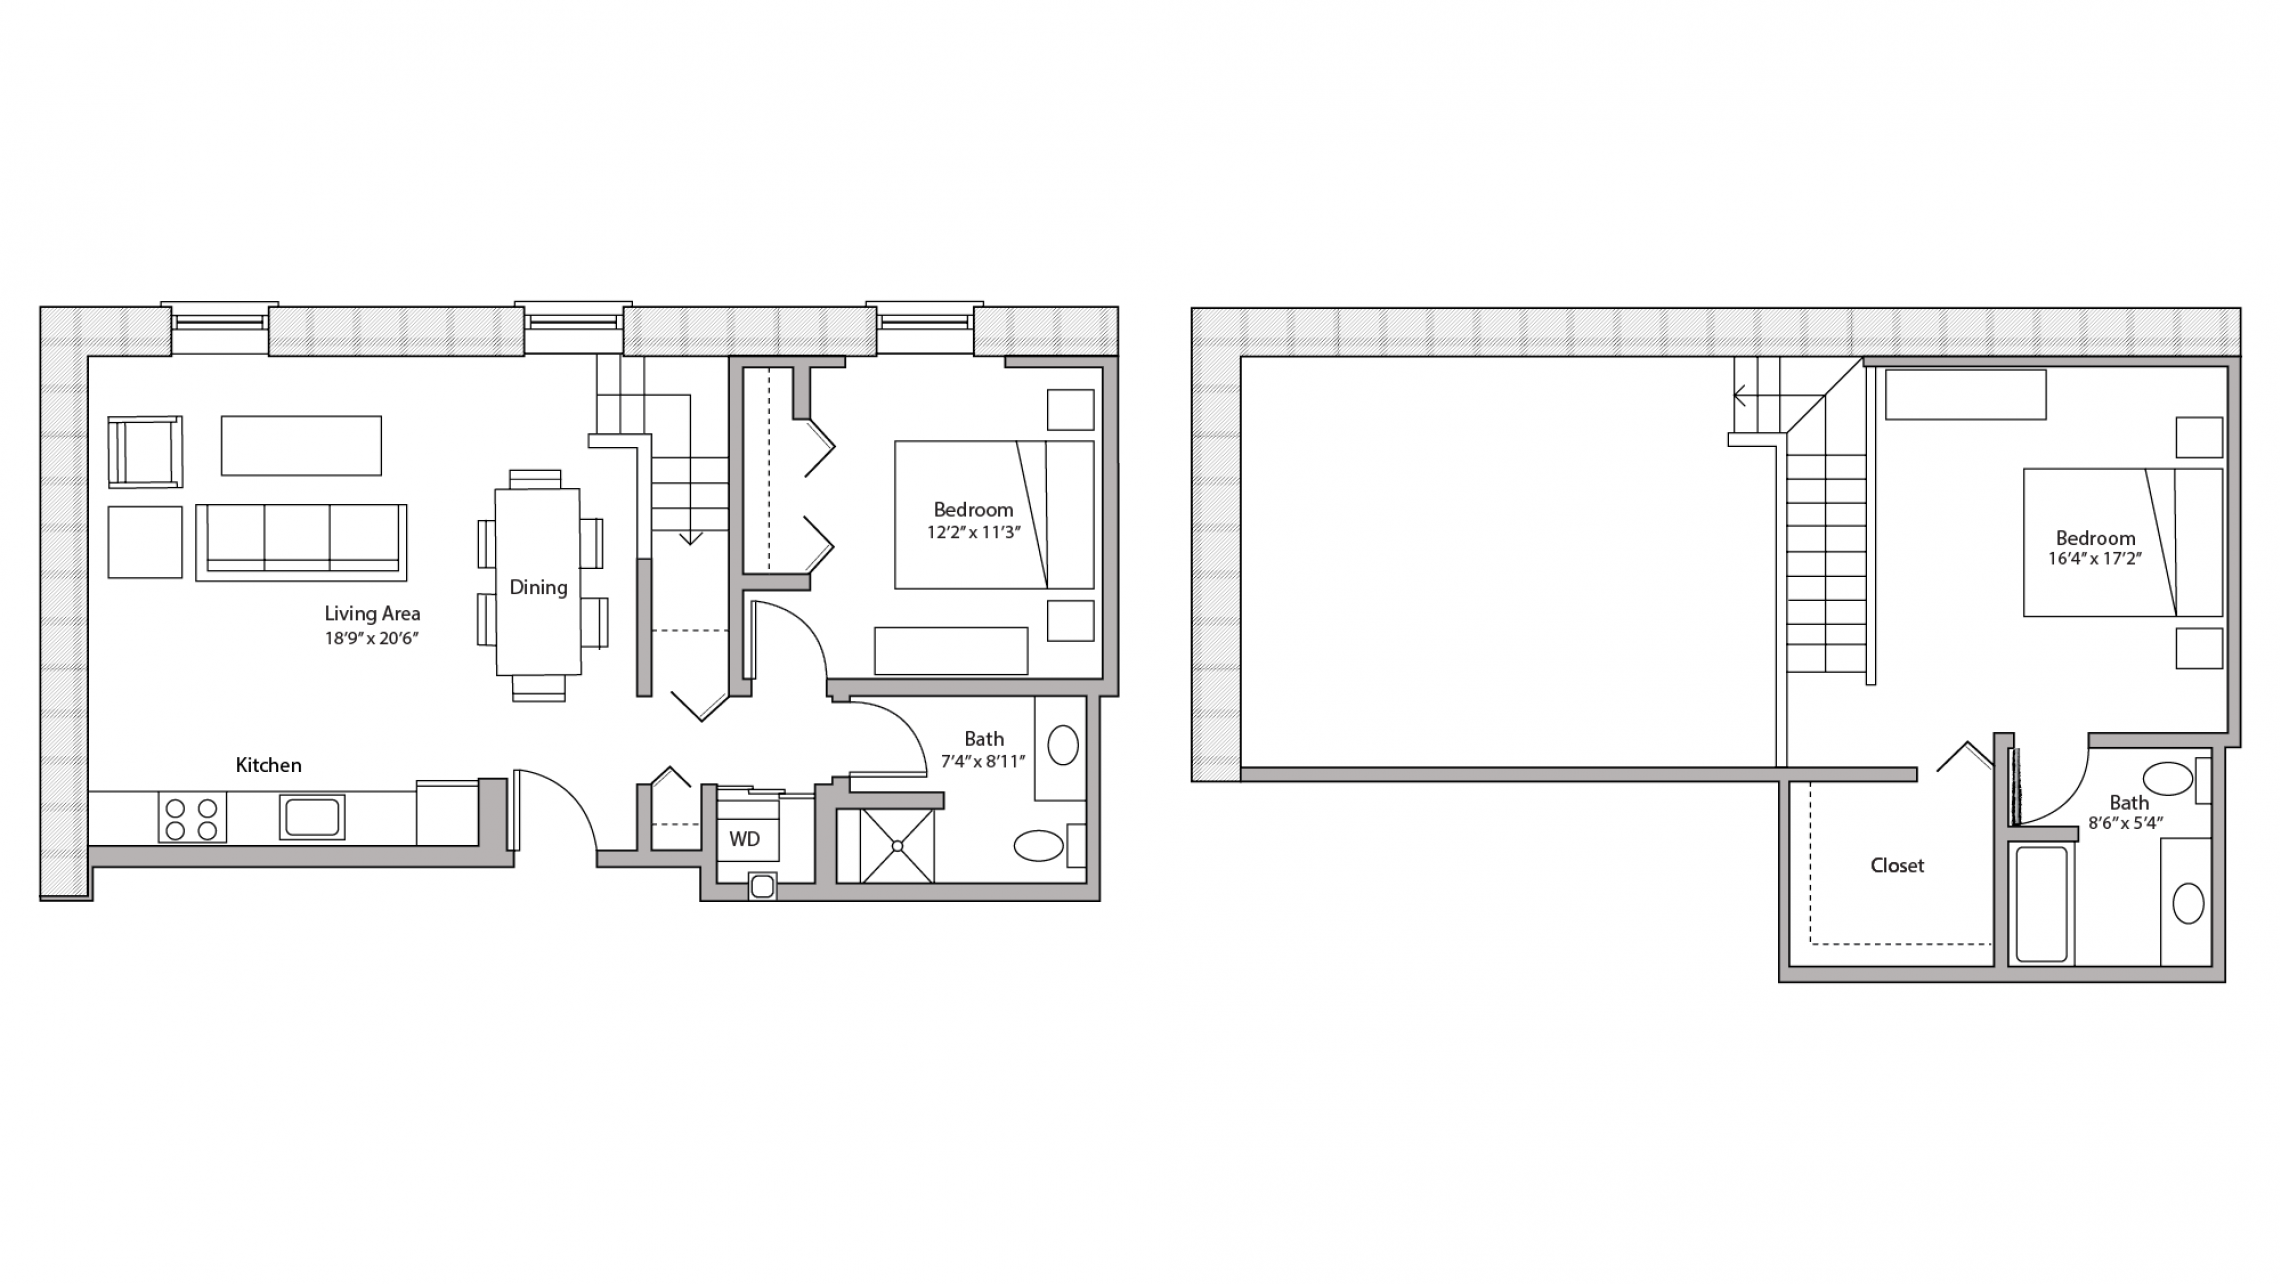 ULI Tobacco Lofts E207 - Two Bedroom, Two Bathroom